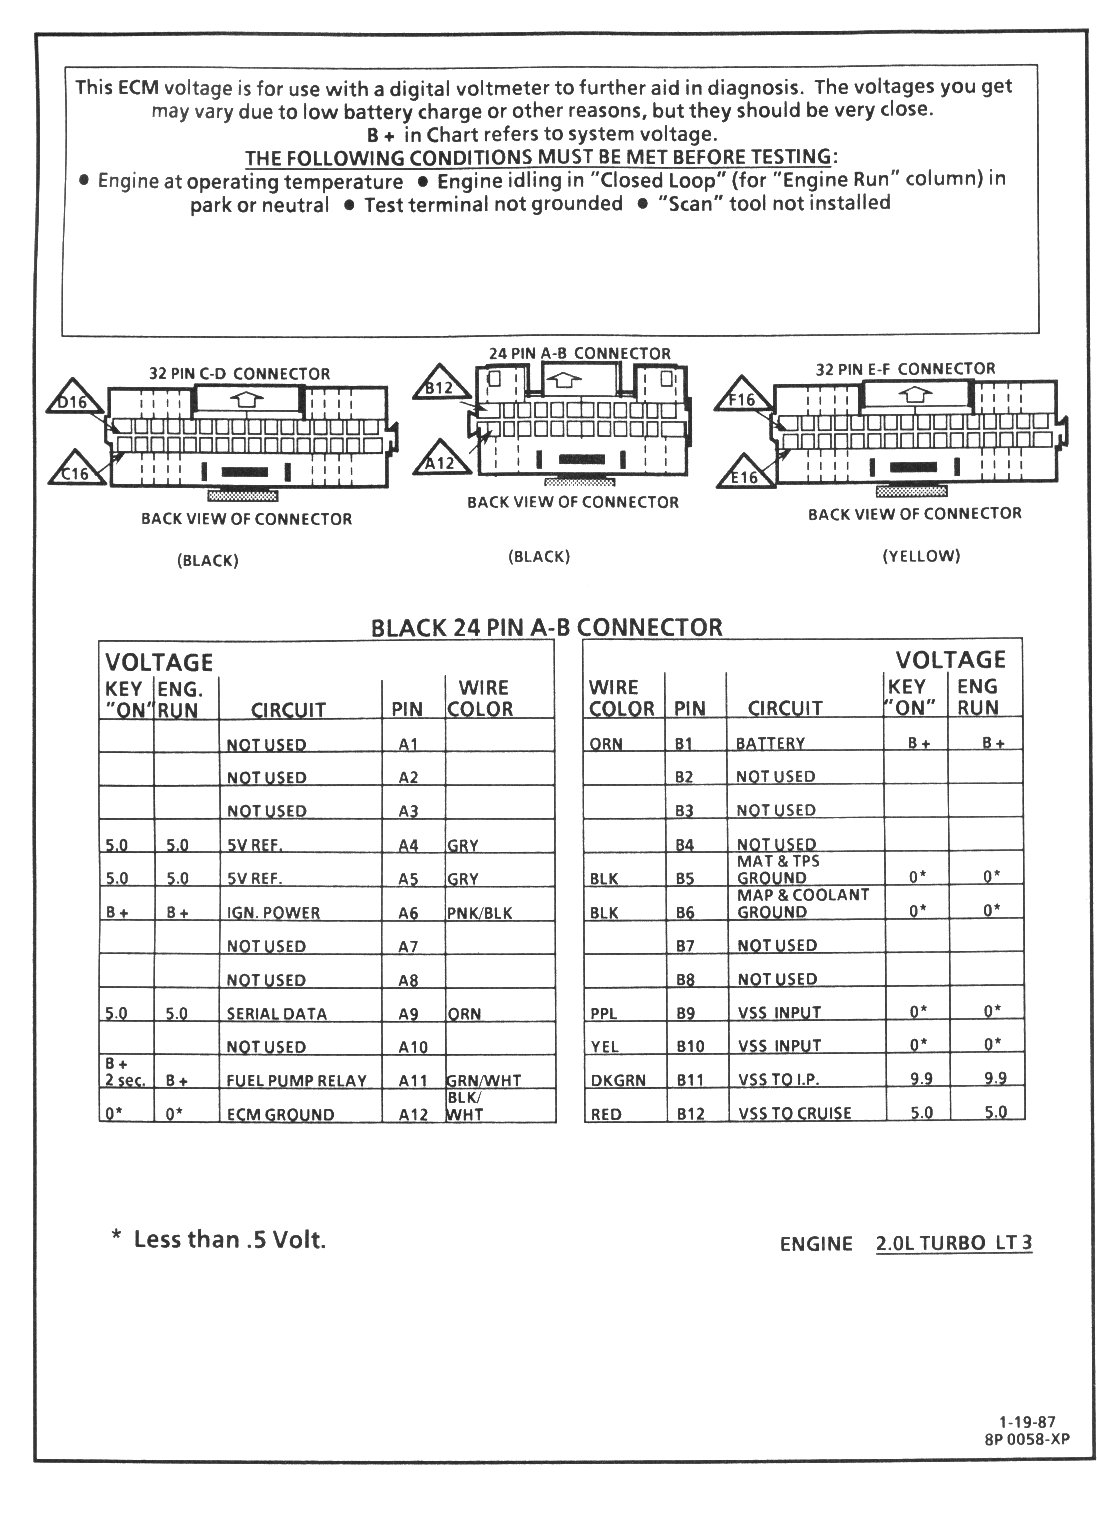 749sunbird5?resize\\d665%2C924 detroit series 60 ecm wiring diagram efcaviation com ddec 4 ecm wiring diagram at cos-gaming.co